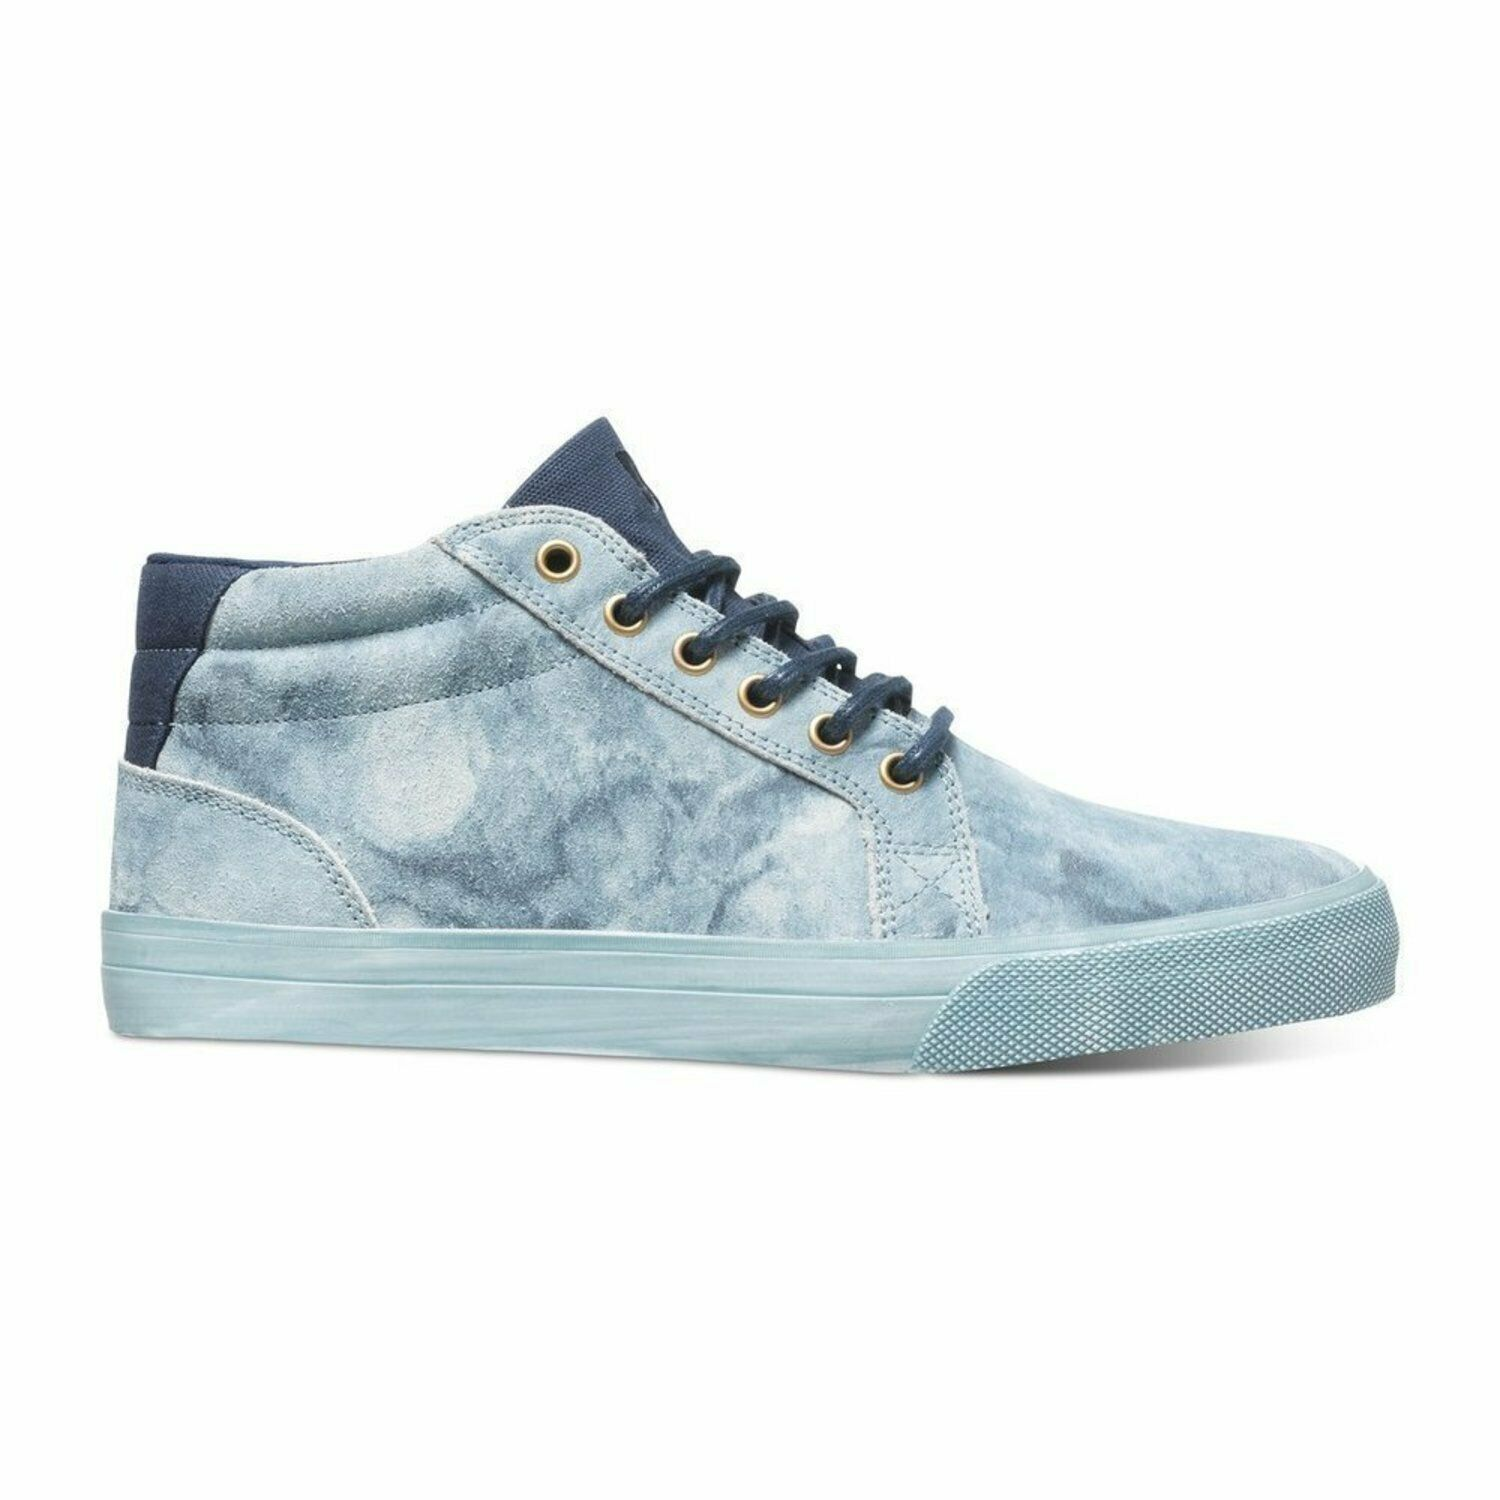 DC shoes Council Mid LX Washed Indigo Shoes New Ss 2016 39 45 46 Skate